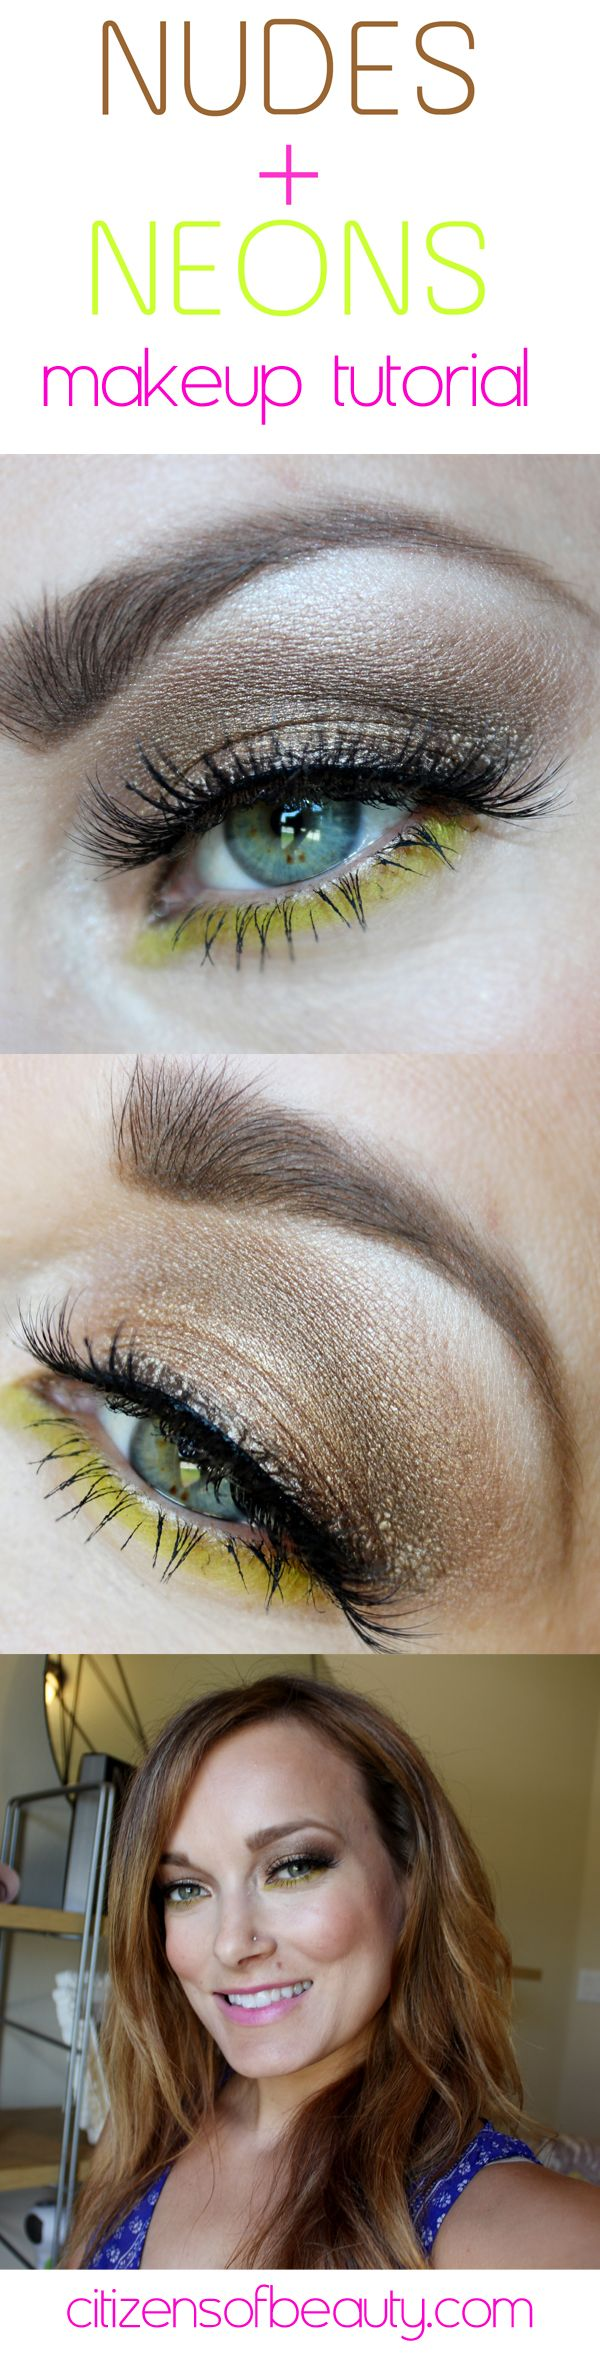 Tutorial: Nude and Neon Makeup Featuring Urban Decay Electric and Naked 2 Palettes #urbandecay #bbloggers #eotd via @Citizens Of Beauty